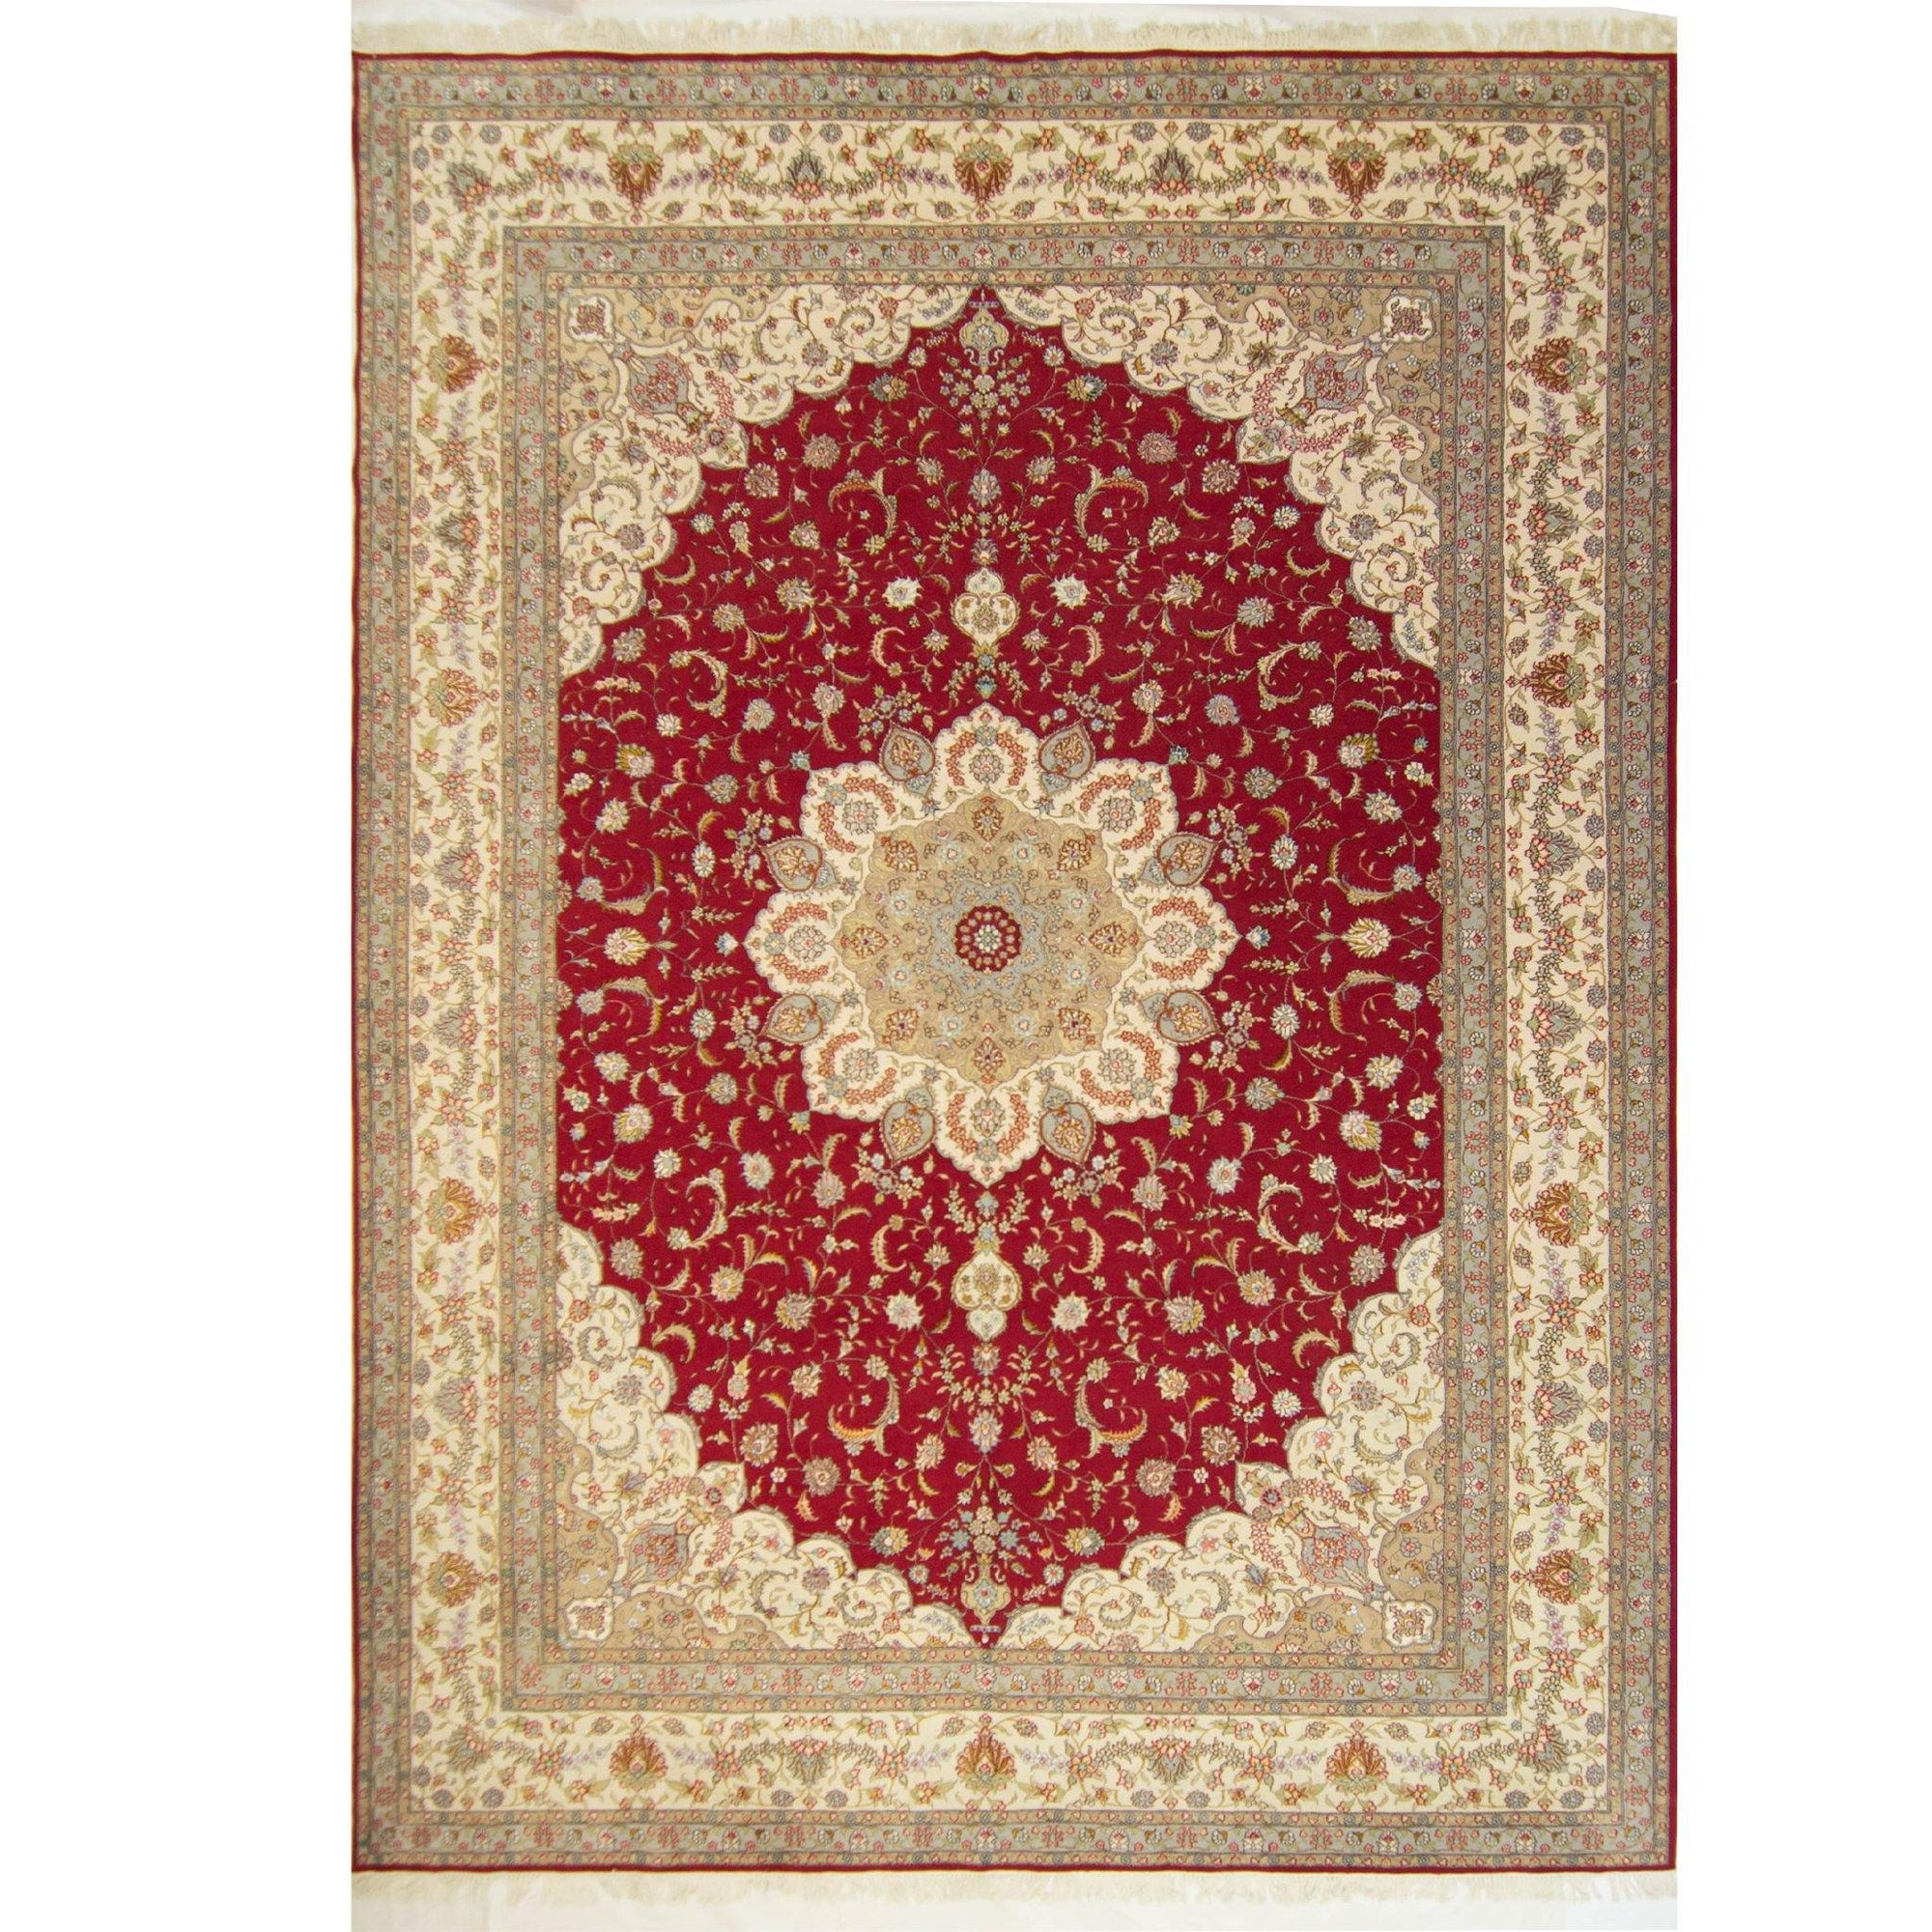 Fine Hand-knotted Wool and Silk Tabriz Rug 305cm x 427cm Persian-Rug | House-of-Haghi | NewMarket | Auckland | NZ | Handmade Persian Rugs | Hand Knotted Persian Rugs